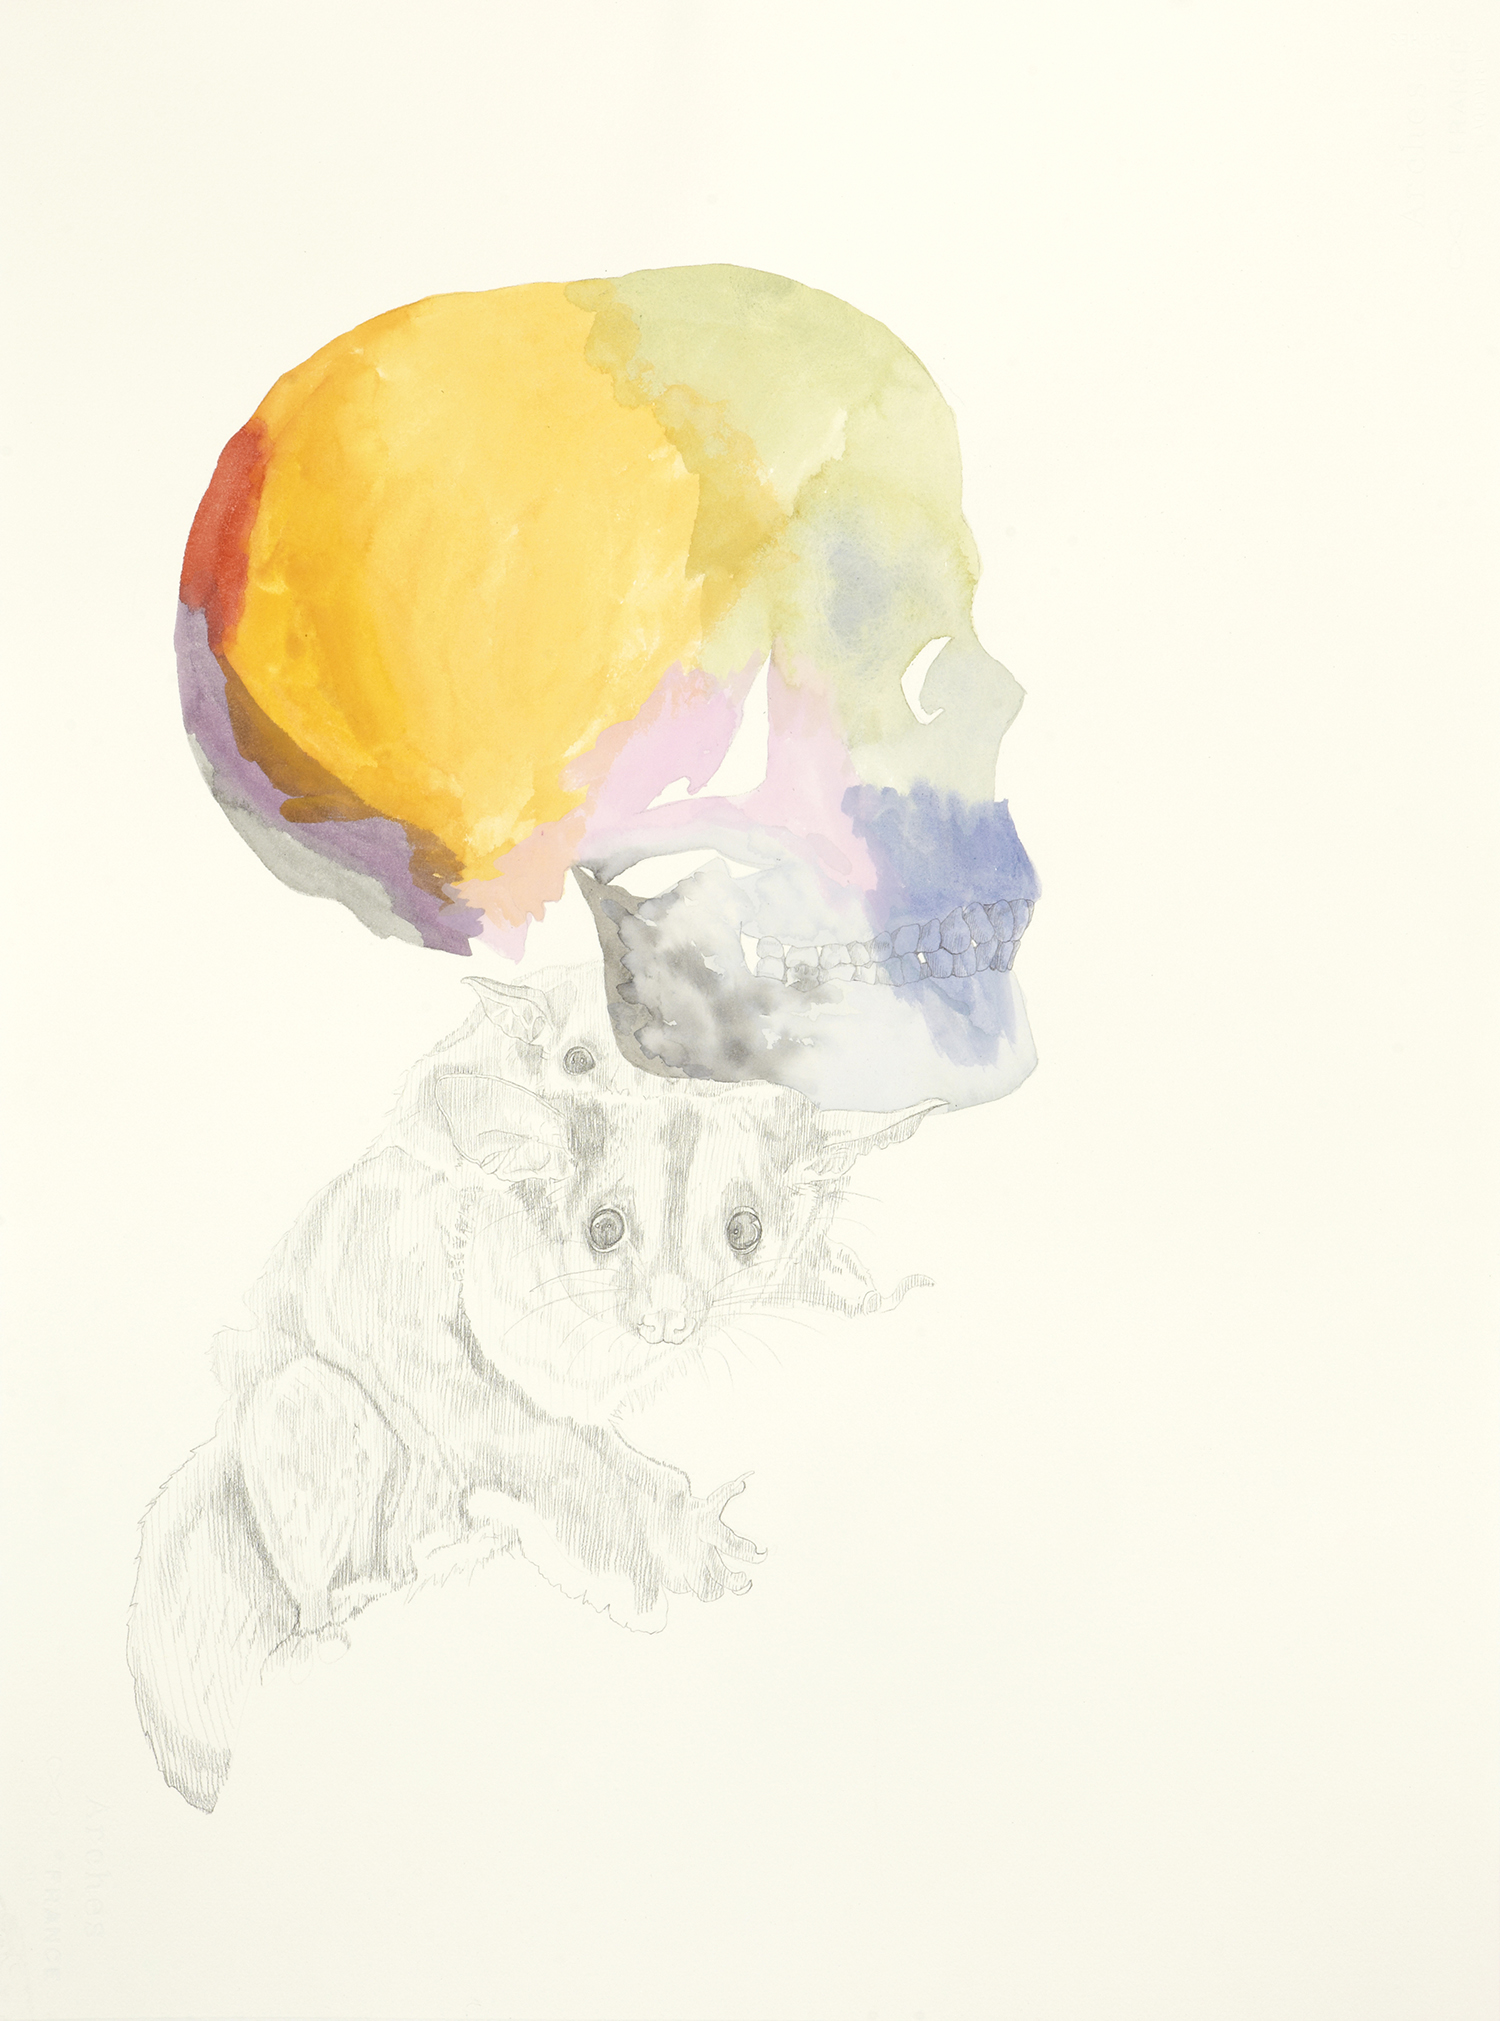 Let There Be Monsters, 2011, Watercolour and pencil on paper, 56.0 x 76.0 cm, Photo: Sam Scoufos